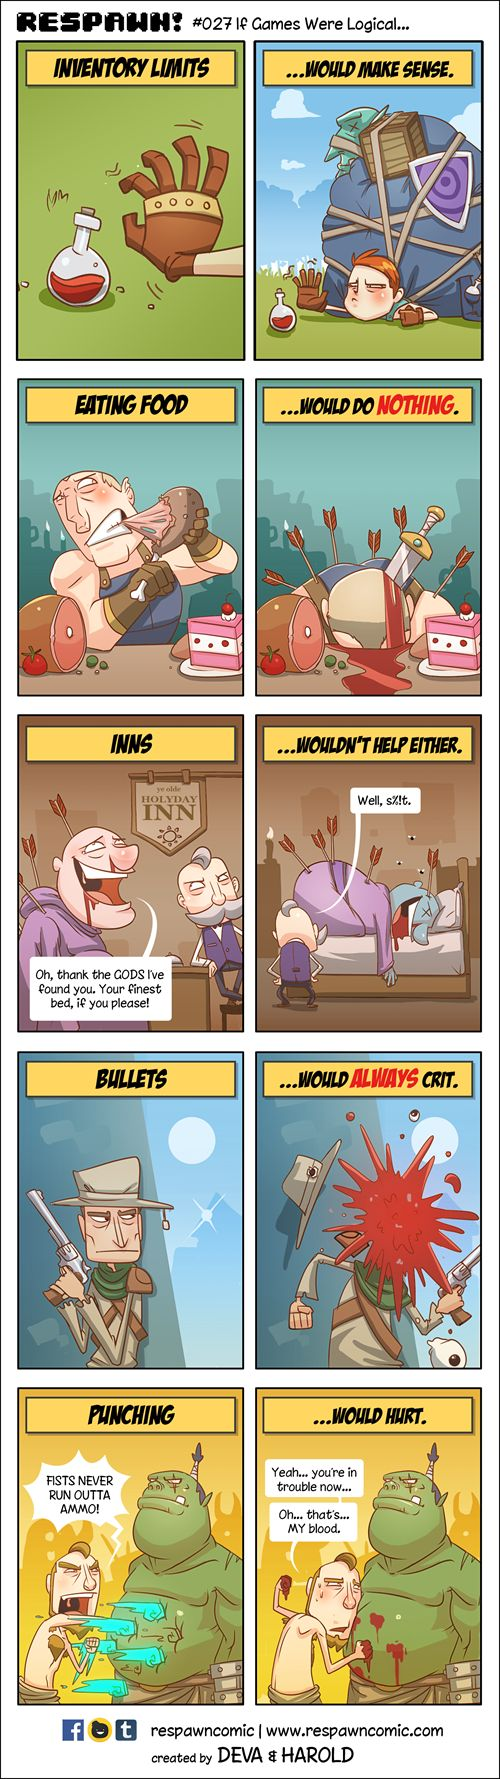 This Collection of Web Comics Really Explains What Its Like to Be a Gamer